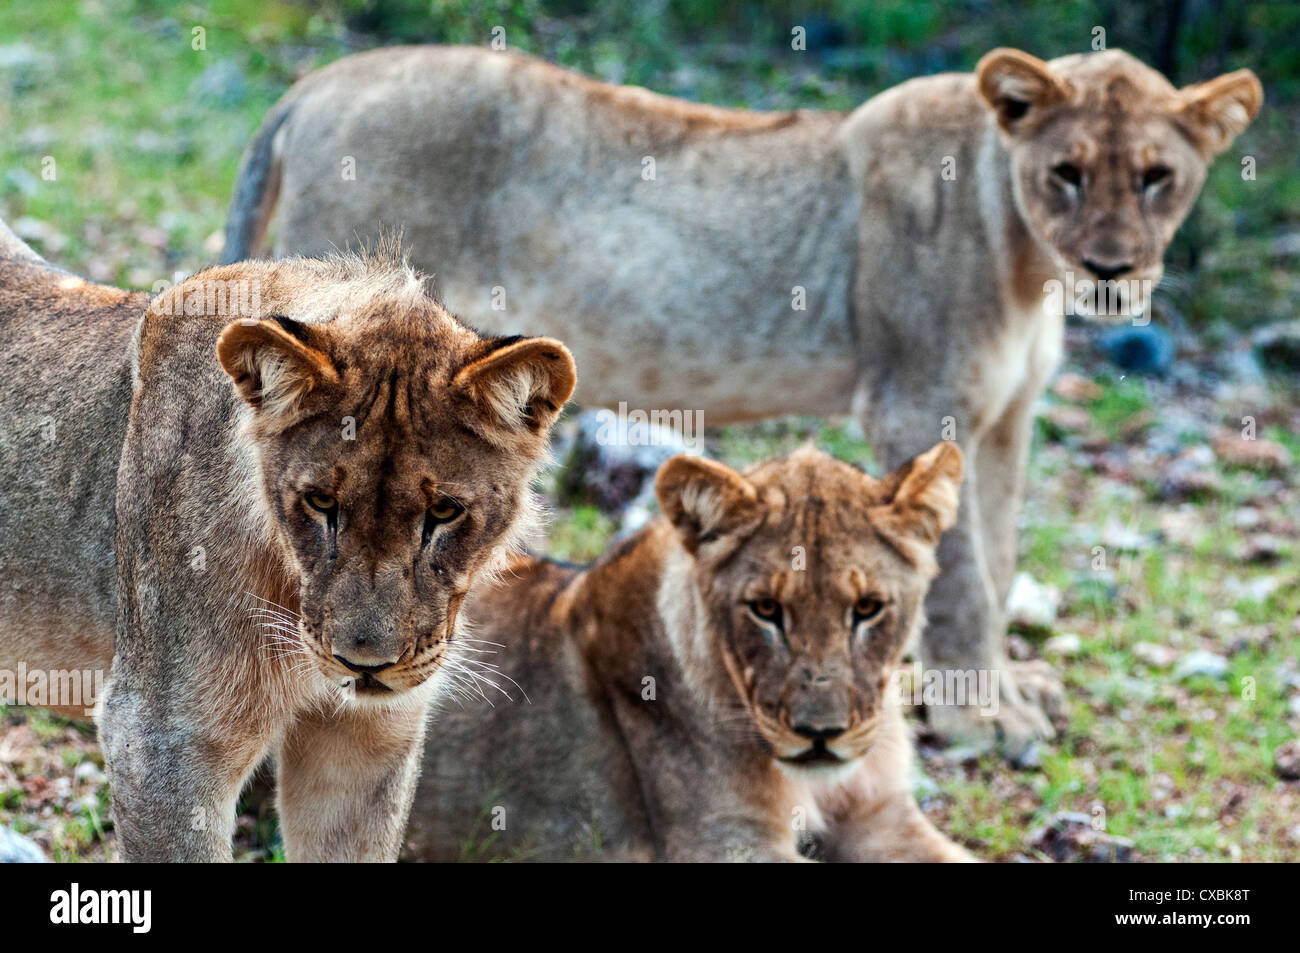 Young lions (Panthera leo), Namibia, Africa - Stock Image